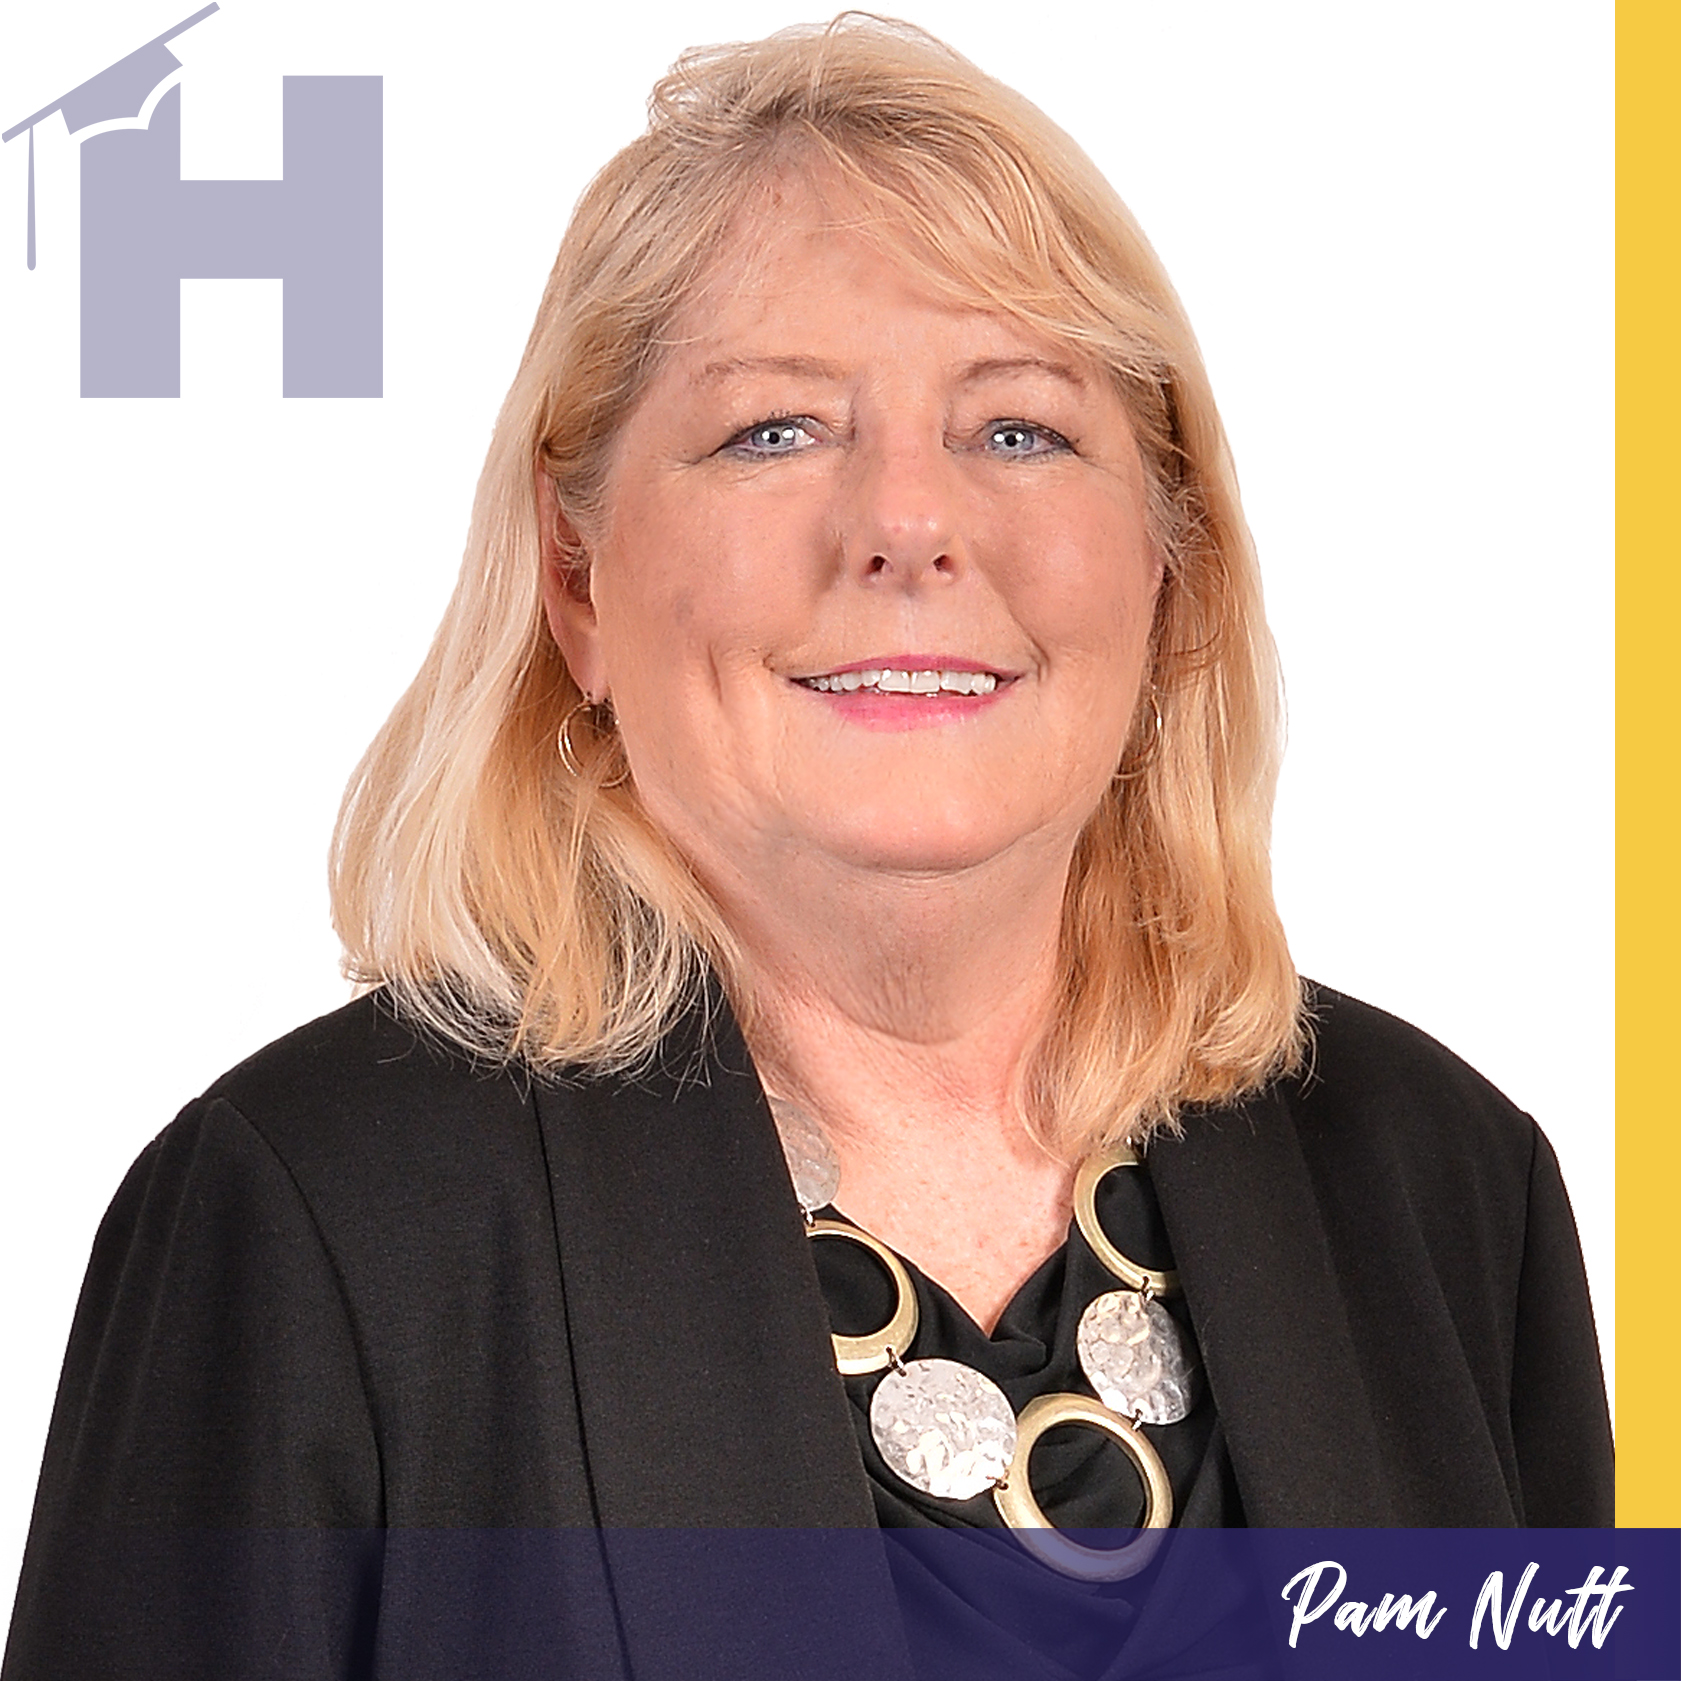 Dr. Pam Nutt - District 1